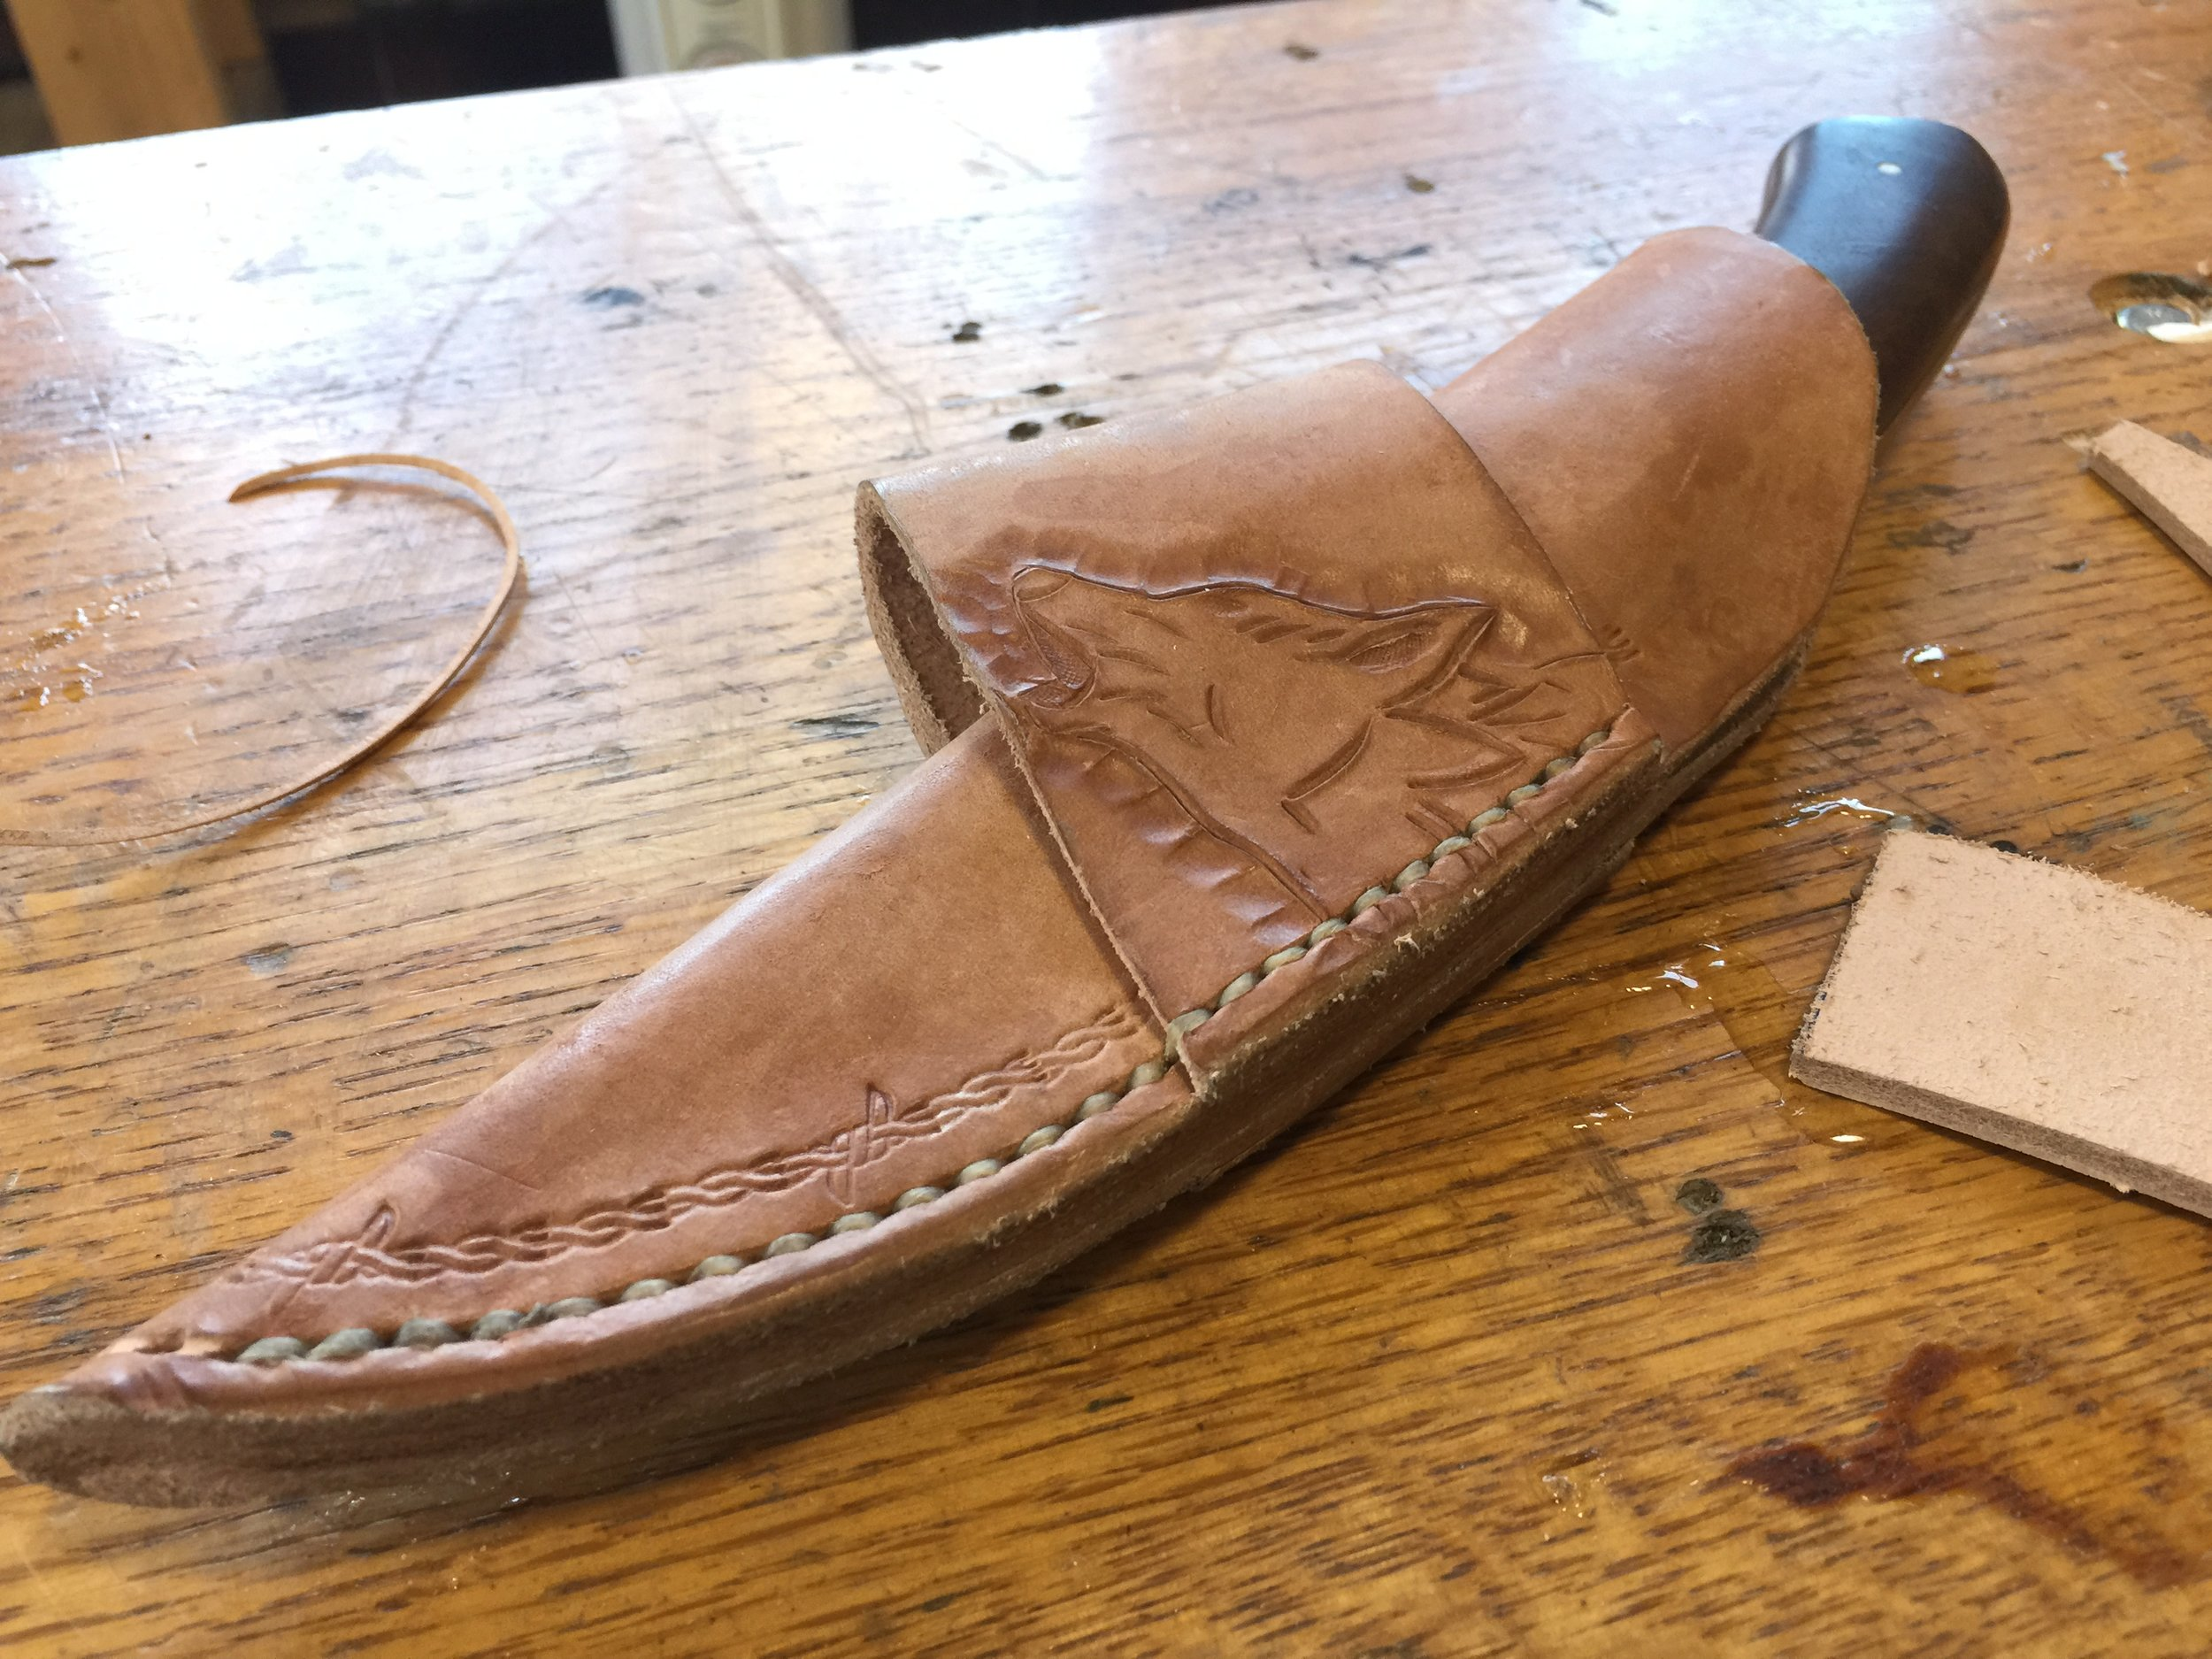 Leatherworking: Make a Knife Sheath Classes - Learn how to sew, dye and draw on leather.